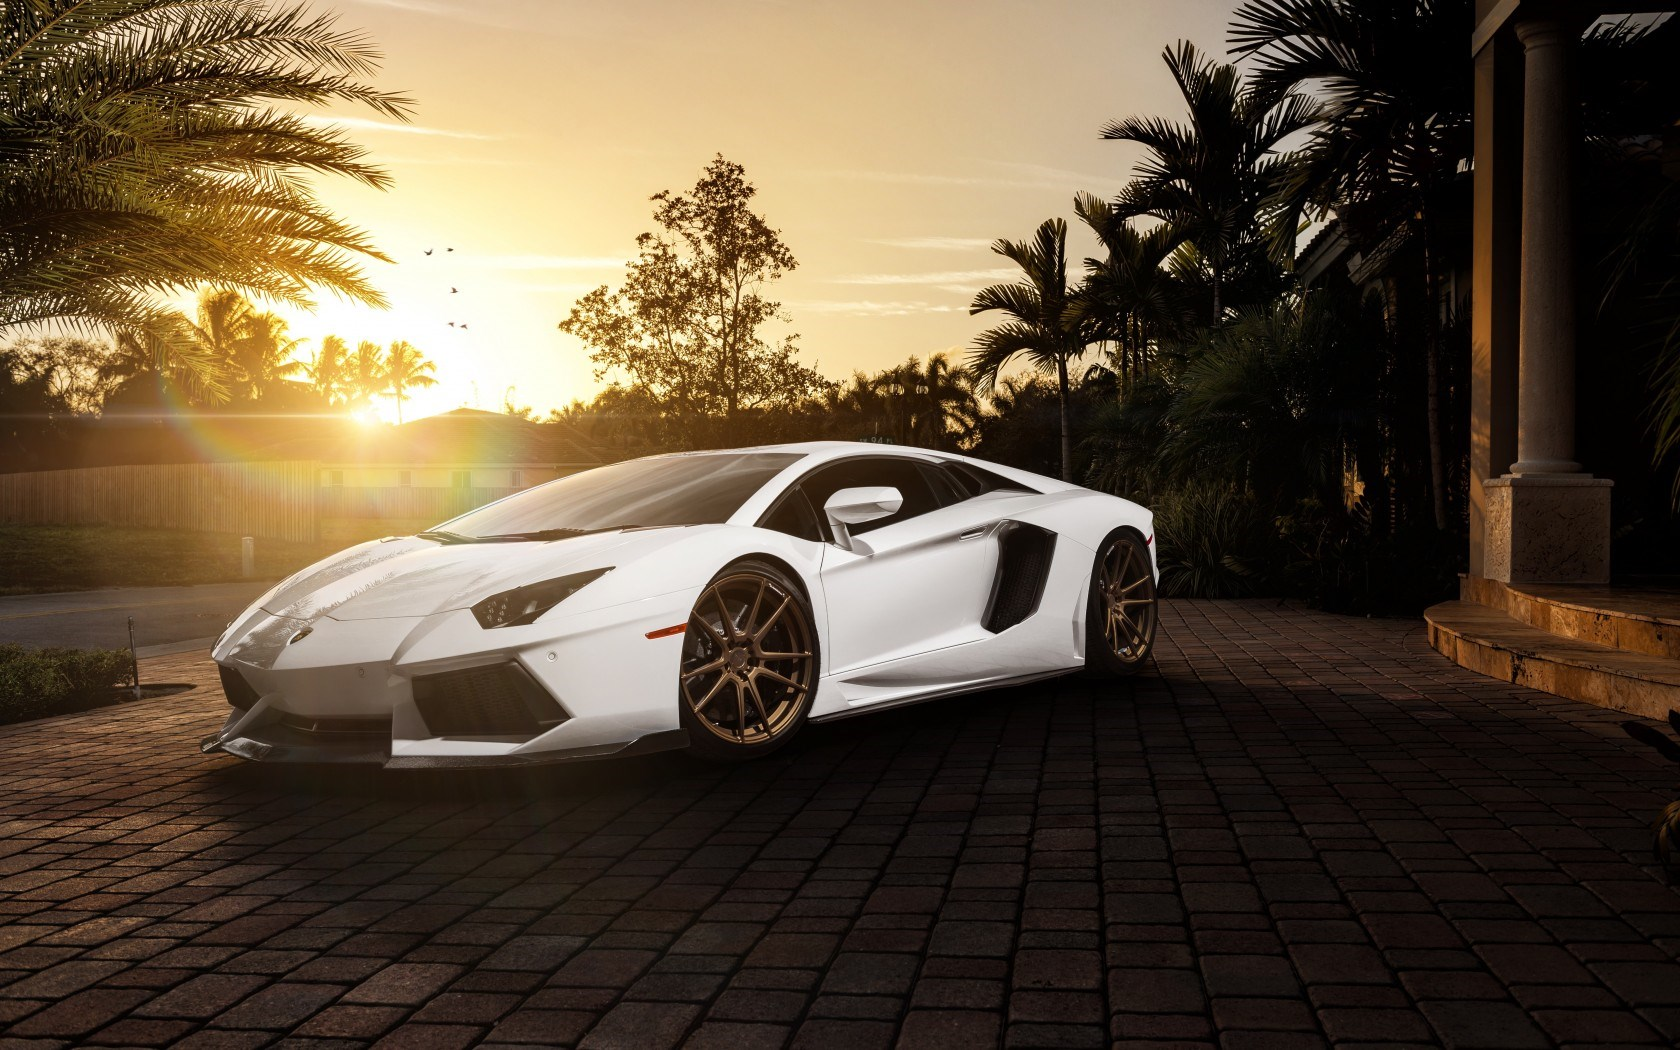 Lamborghini Aventador White Car Tuning Parking